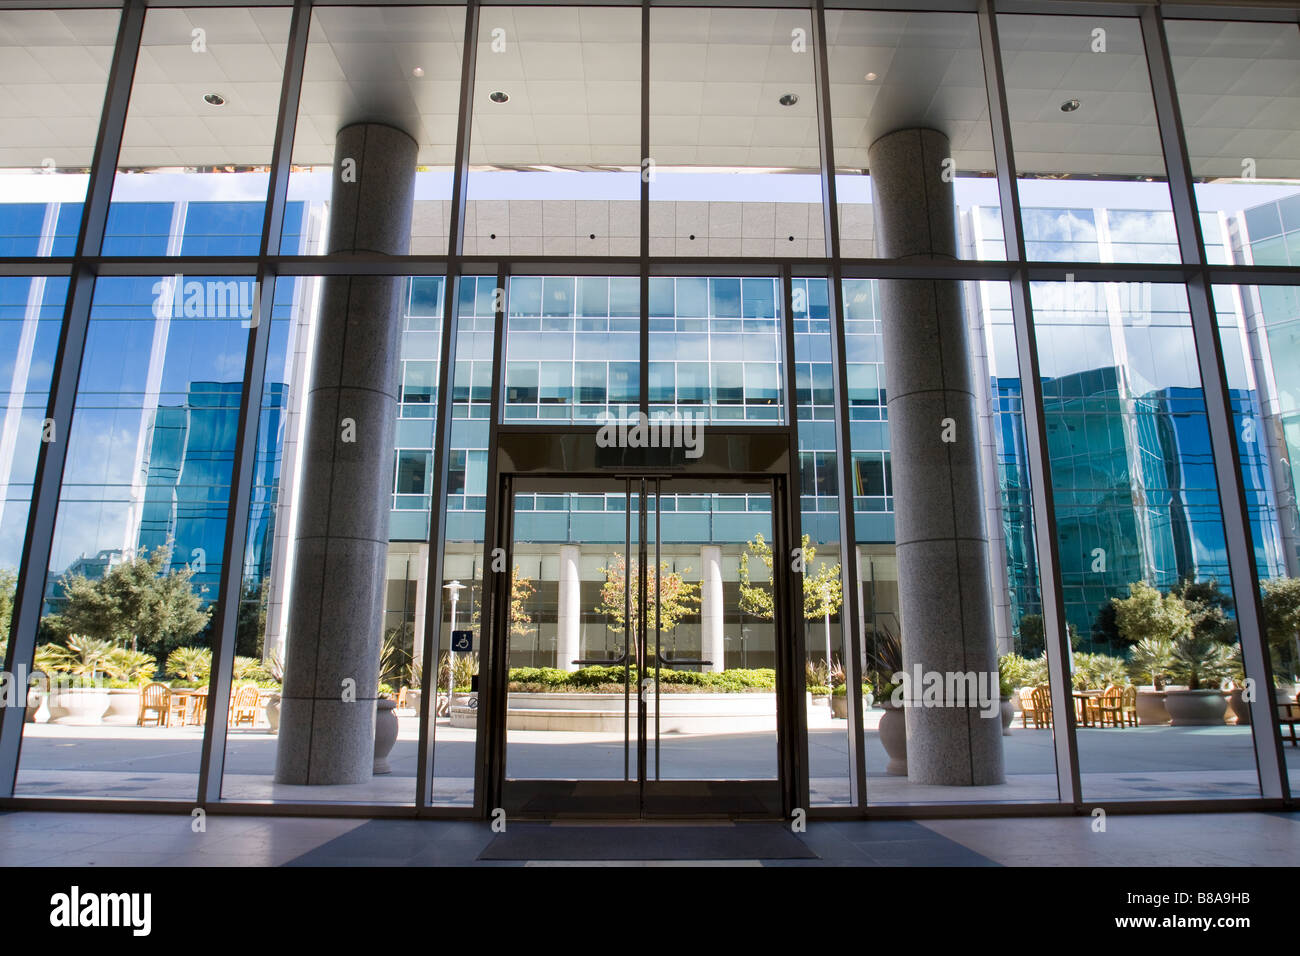 office front doors. Attractive Courtyard Patio Area As Seen Through The Glass Front Door Entrance To A Modern Office Building Complex Doors G